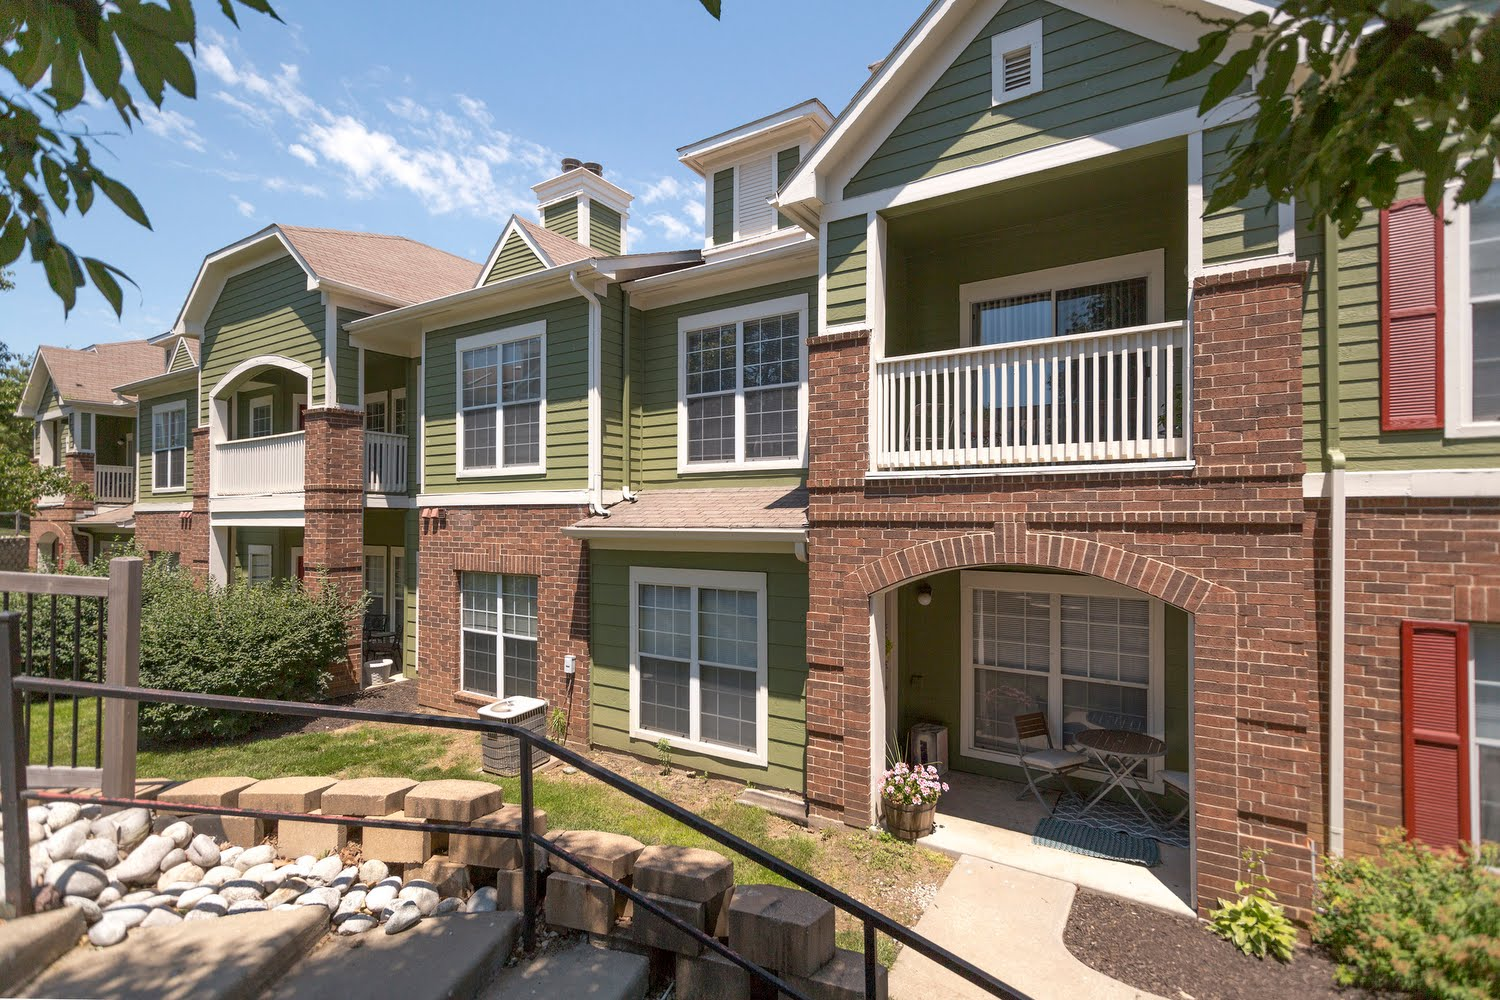 Centennial park apartments in overland park kansas One bedroom apartments in overland park ks